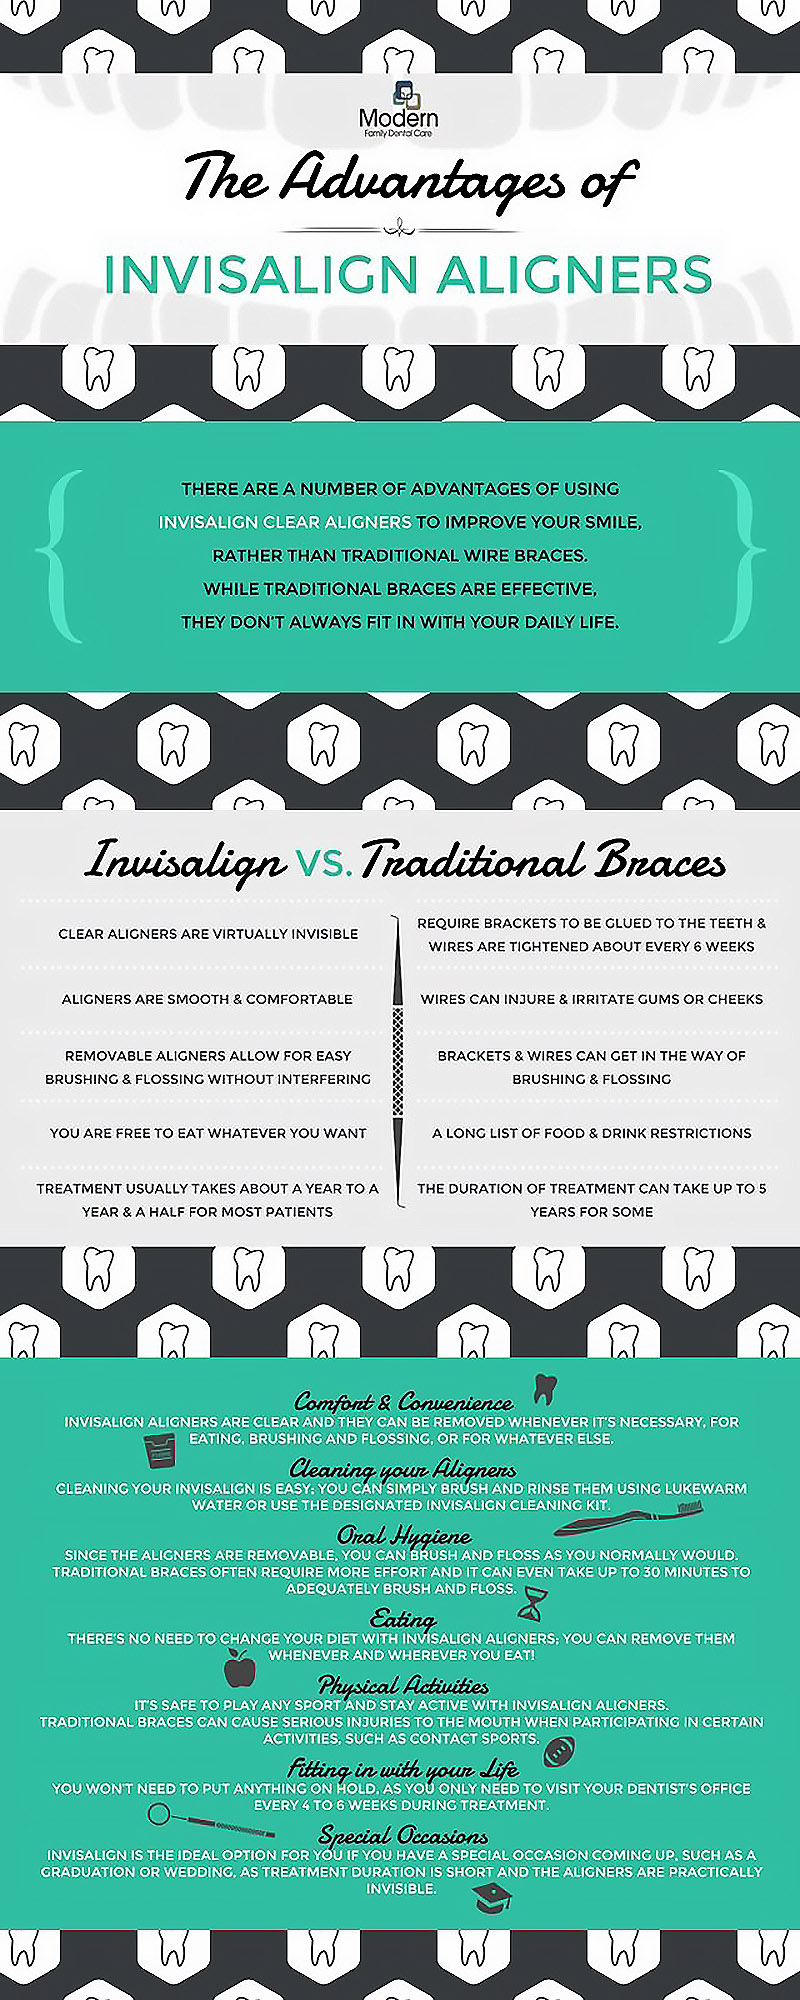 The Advantages of Invisalign Aligners